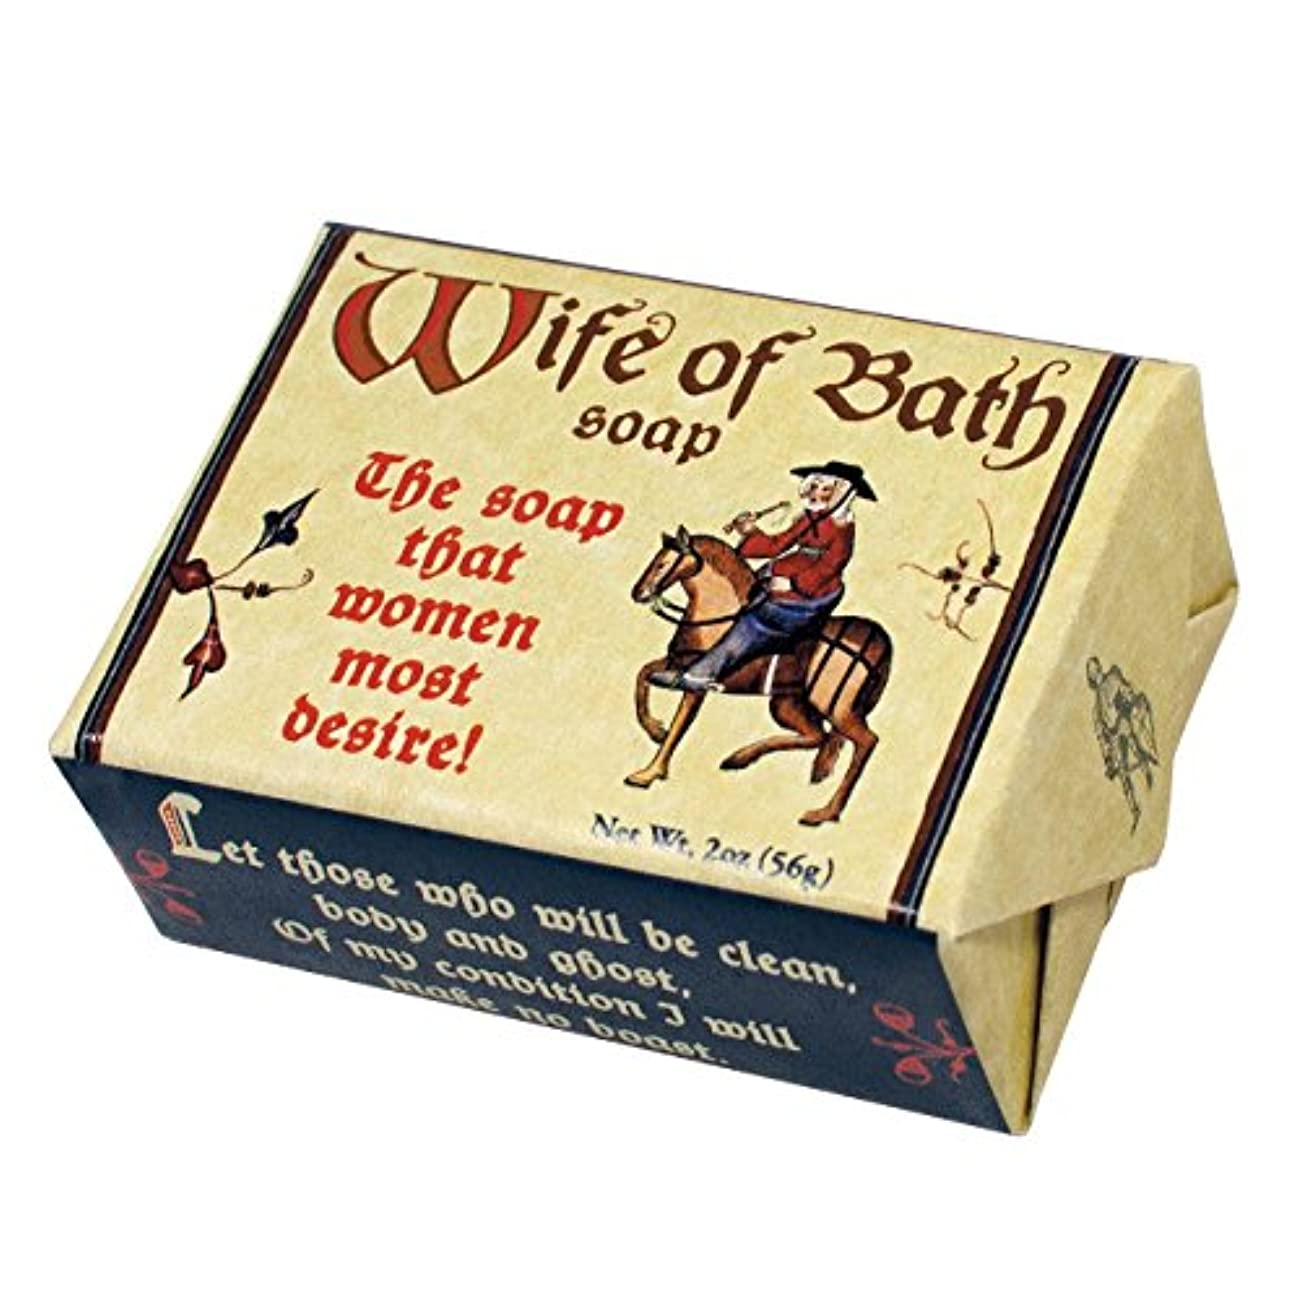 Wife of Bath Soap - 1 Mini Bar of Soap - Made in The USA